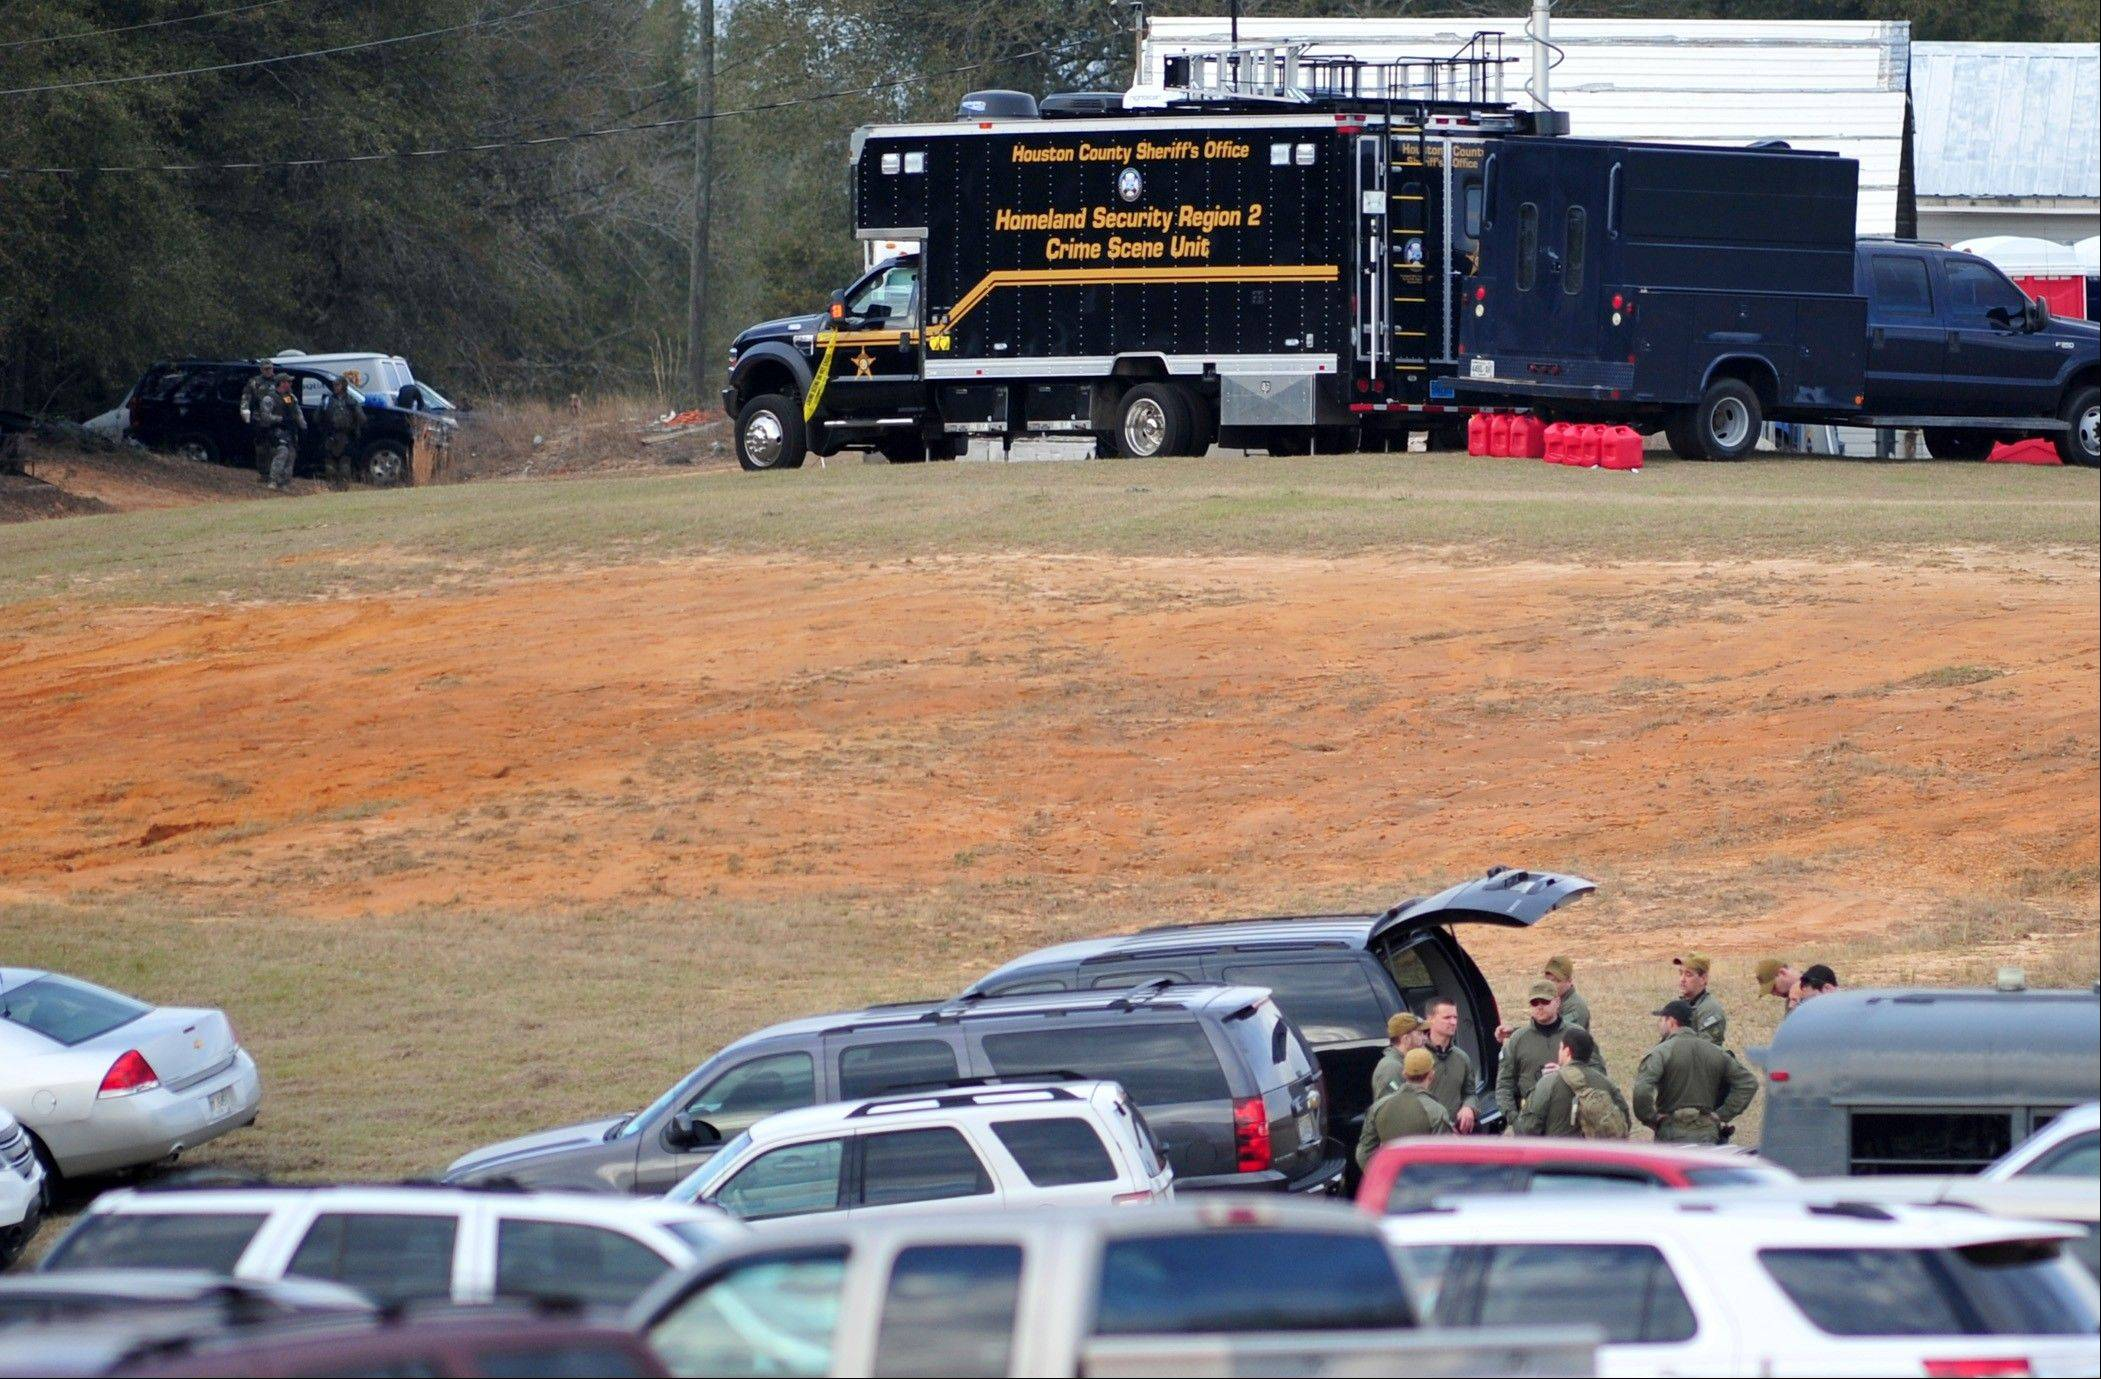 Federal and local law enforcement officers gather at their trucks after the hostage crisis ended in Midland City, Ala., Monday afternoon. Officials say they stormed a bunker in Alabama to rescue a 5-year-old child being held hostage there after his abductor was seen with a gun.